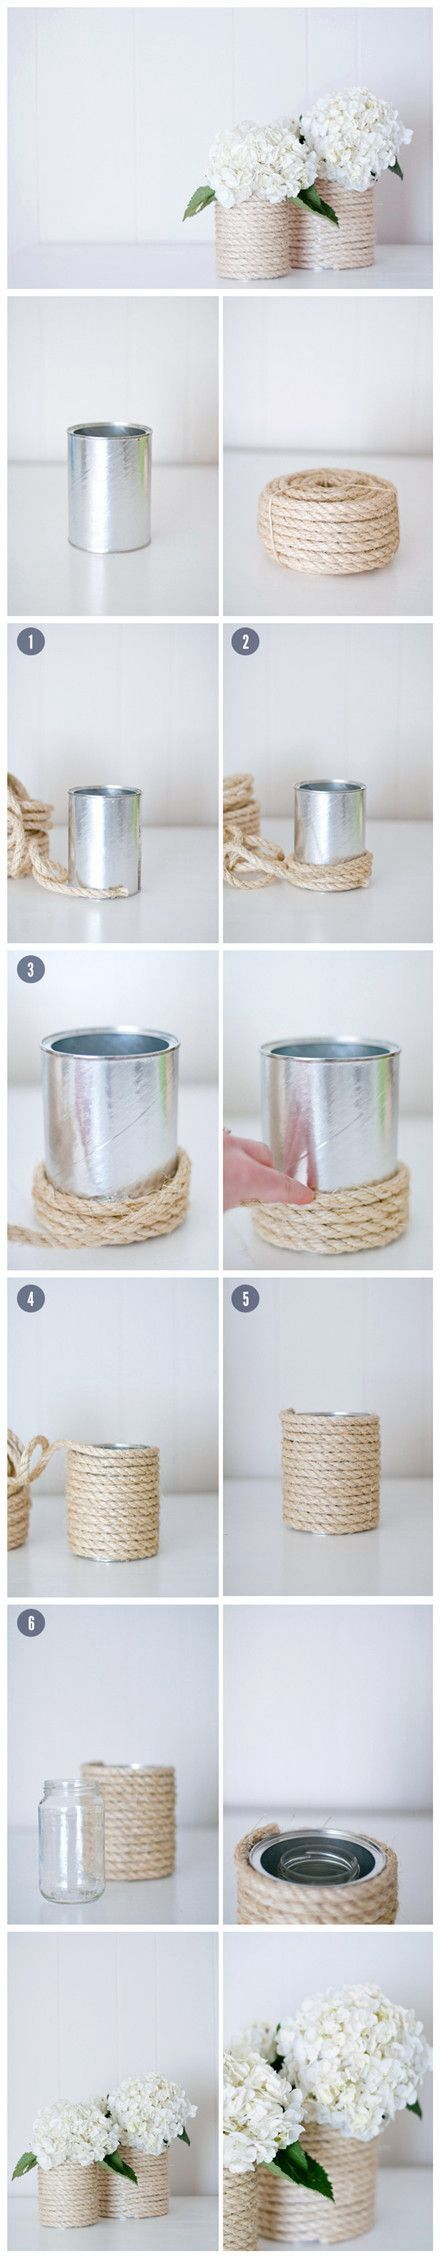 Wrap twine around old cans to turn into center pieces or decorating accessories